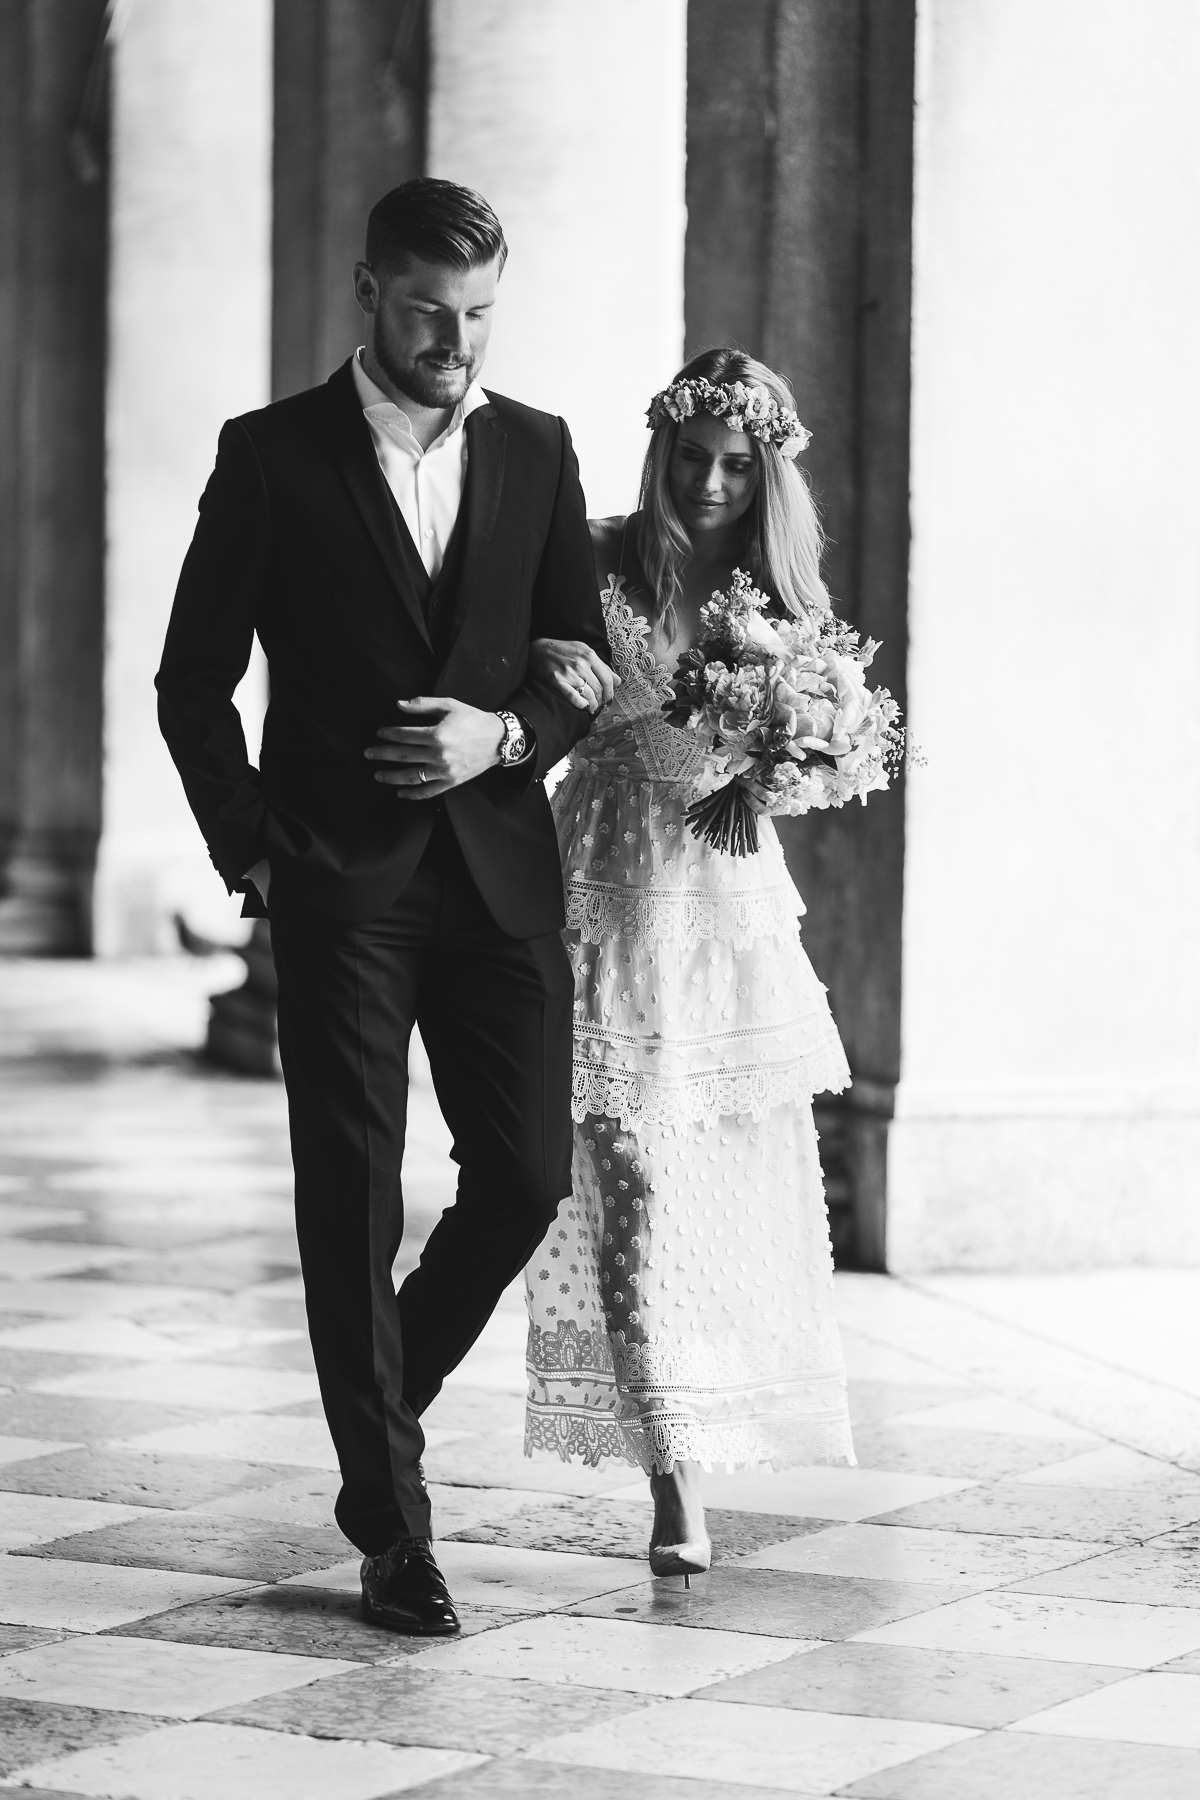 Hochzeitsfotograf Le Hai Linh Boho Chic After Wedding Shooting Venedig Timo Horn 1.FC Koeln 026 neu